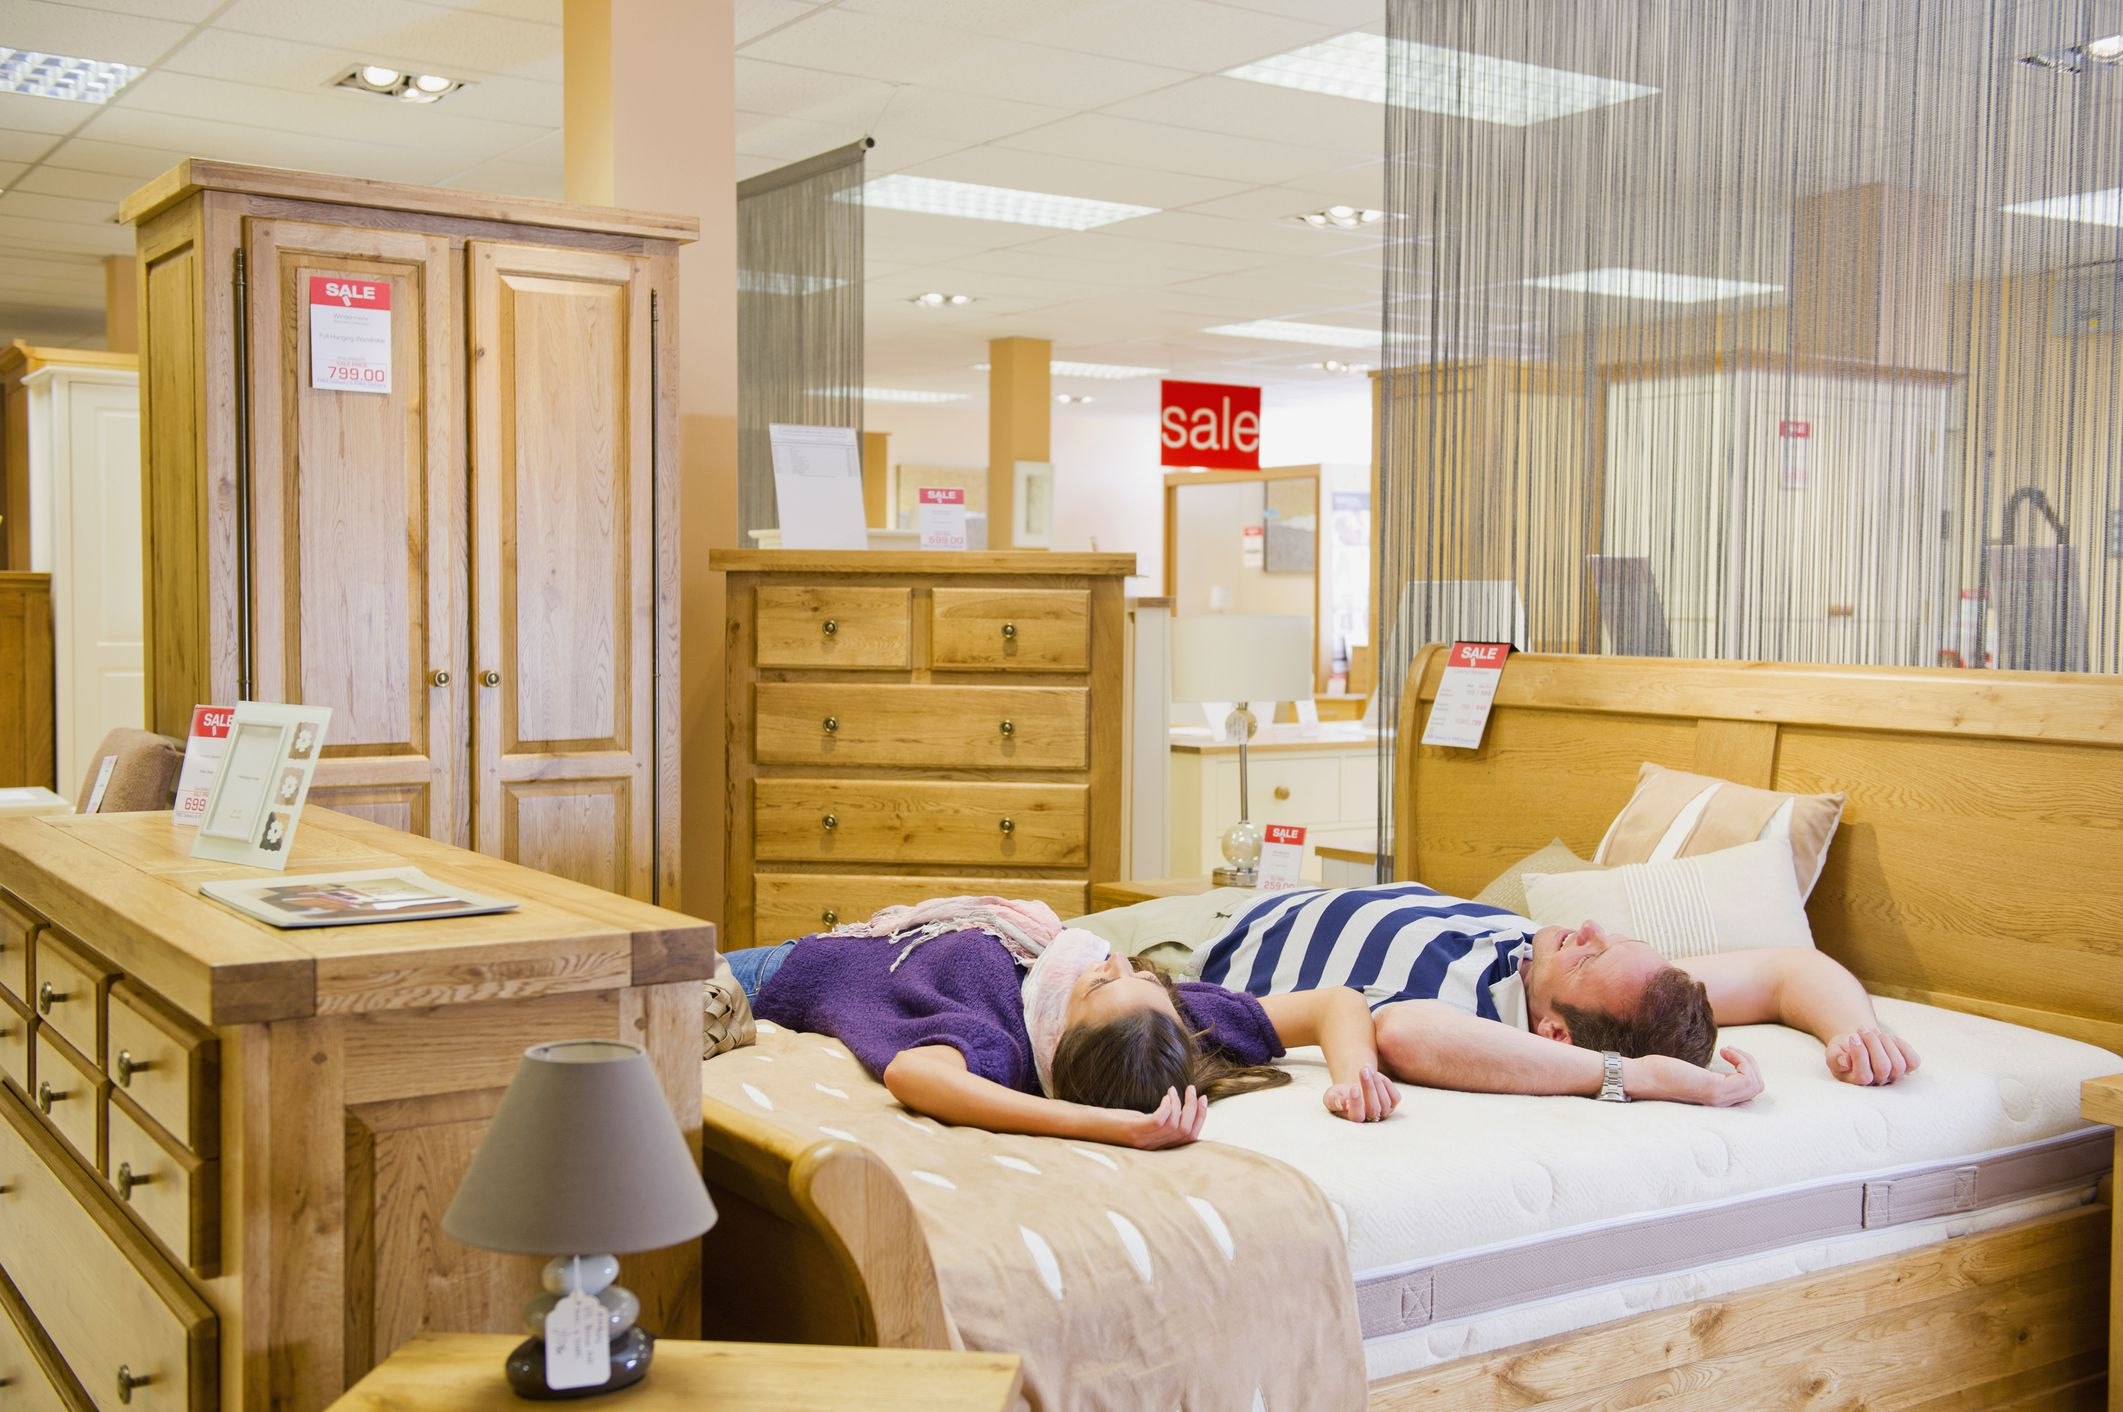 Buying a New Mattress? Read These Nine Tips Before Making the Purchase